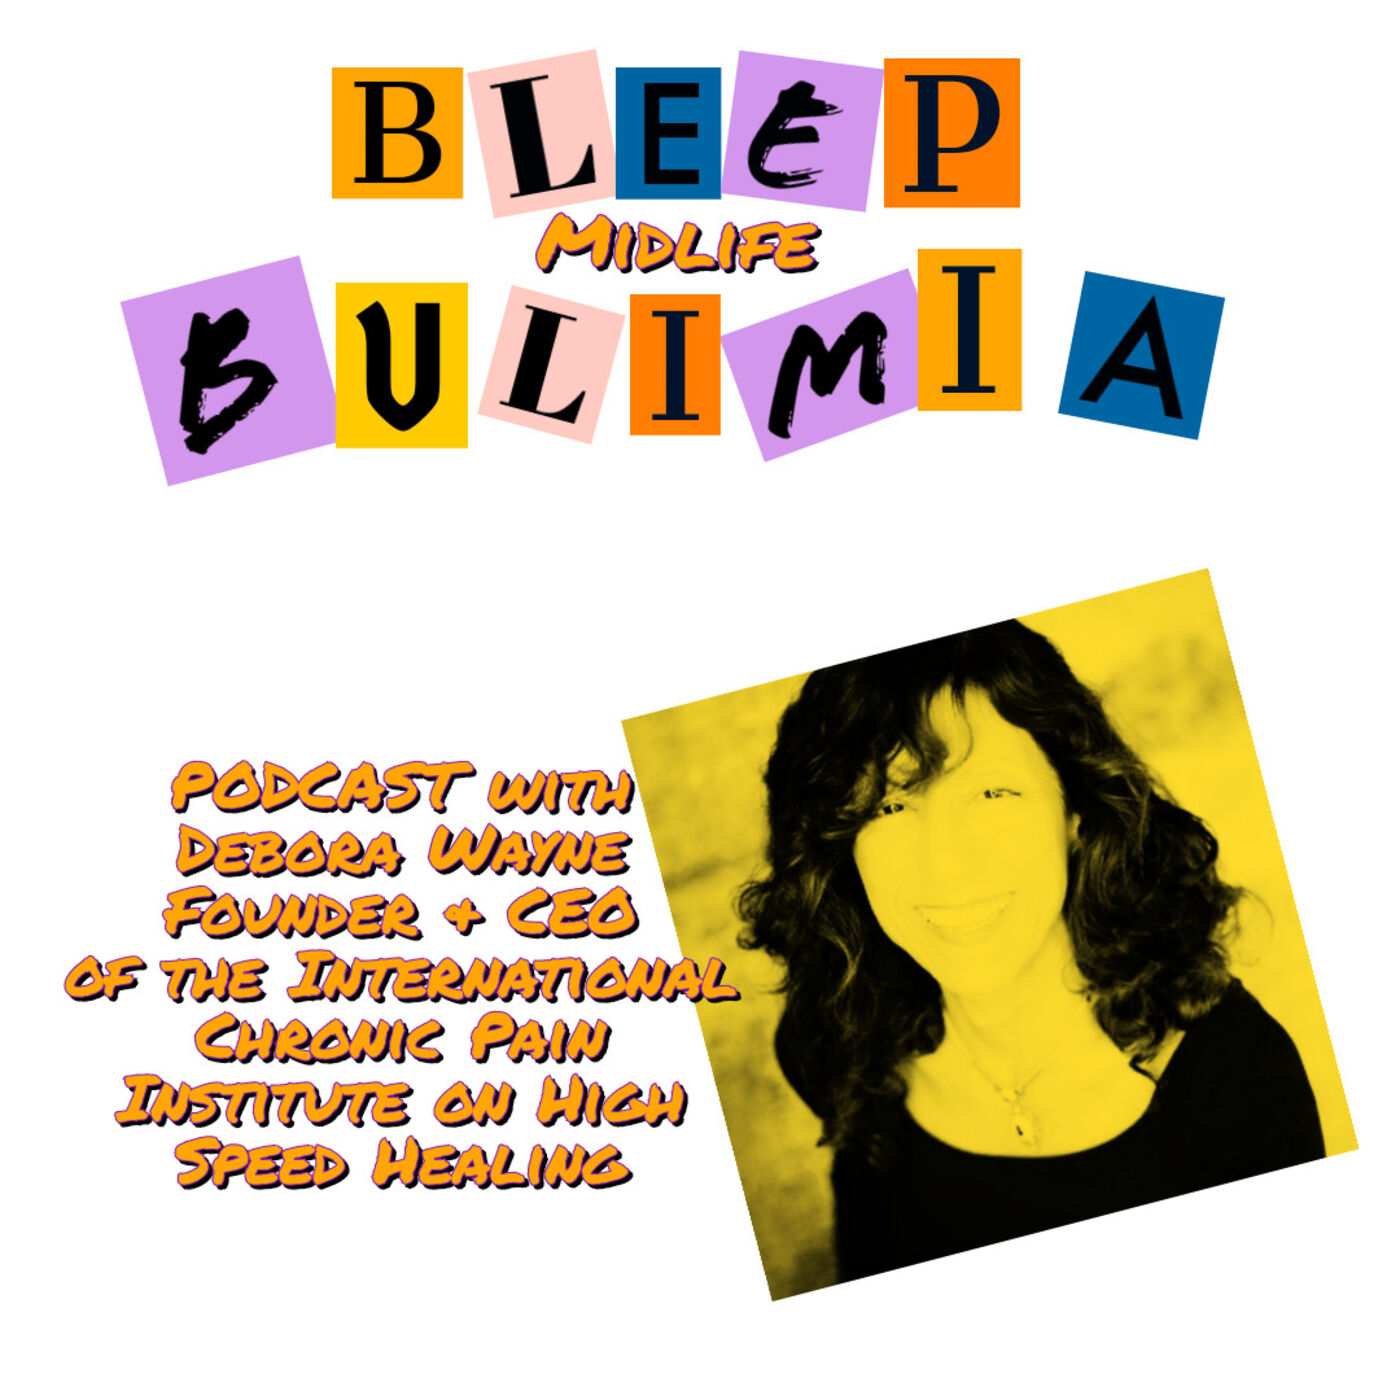 Bleep Bulimia Episode 44 with Debora Wayne CEO and Founder of The International Chronic Pain Institute on High Speed Healing